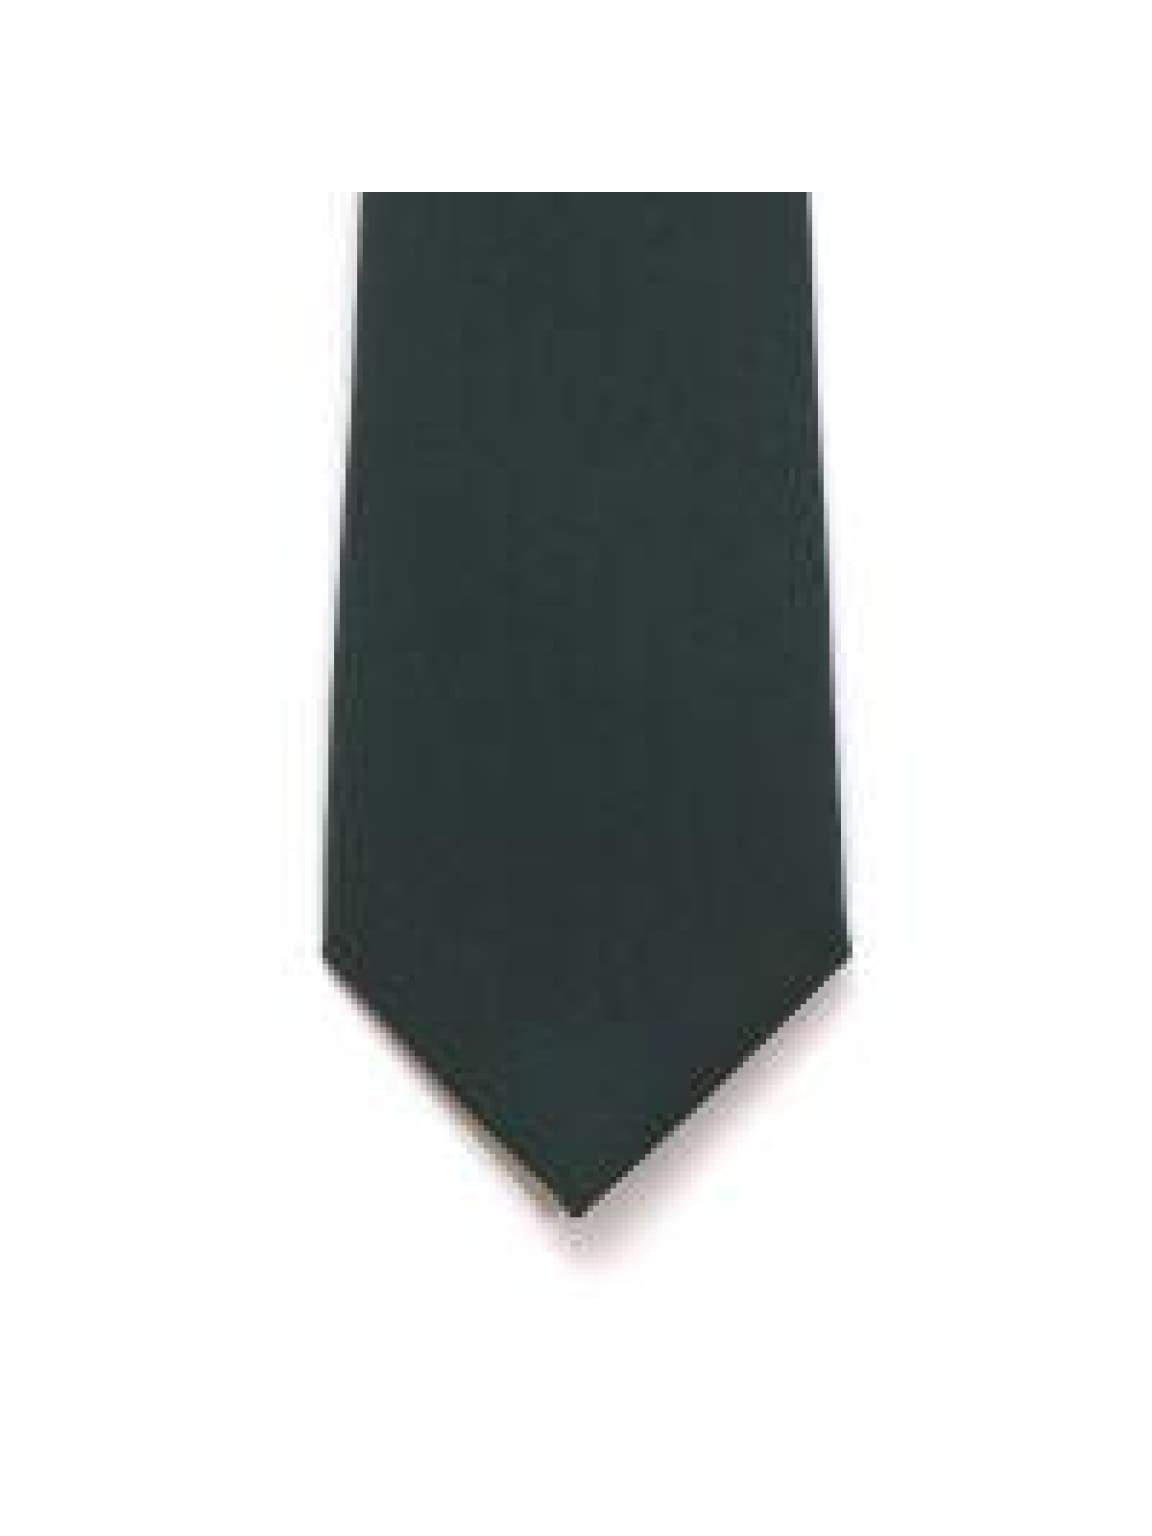 LA Smith Bottle Green Skinny Panama Tie - Accessories